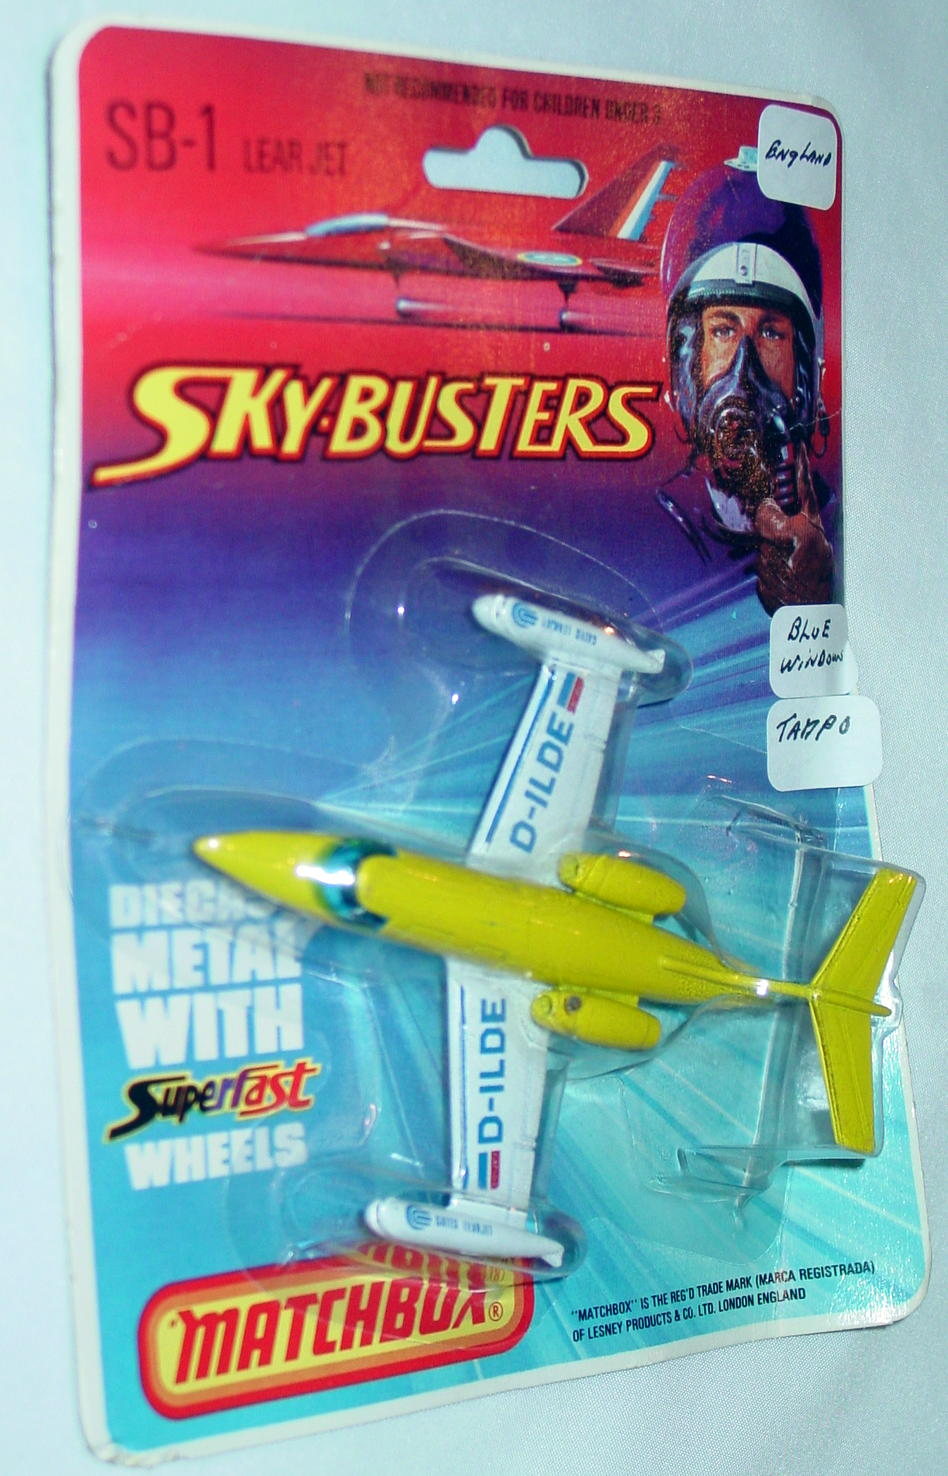 Sky Buster 01 A 3 - Leer Jet Yellow DL-ILDE tampo blue window ENG C8.5 BP